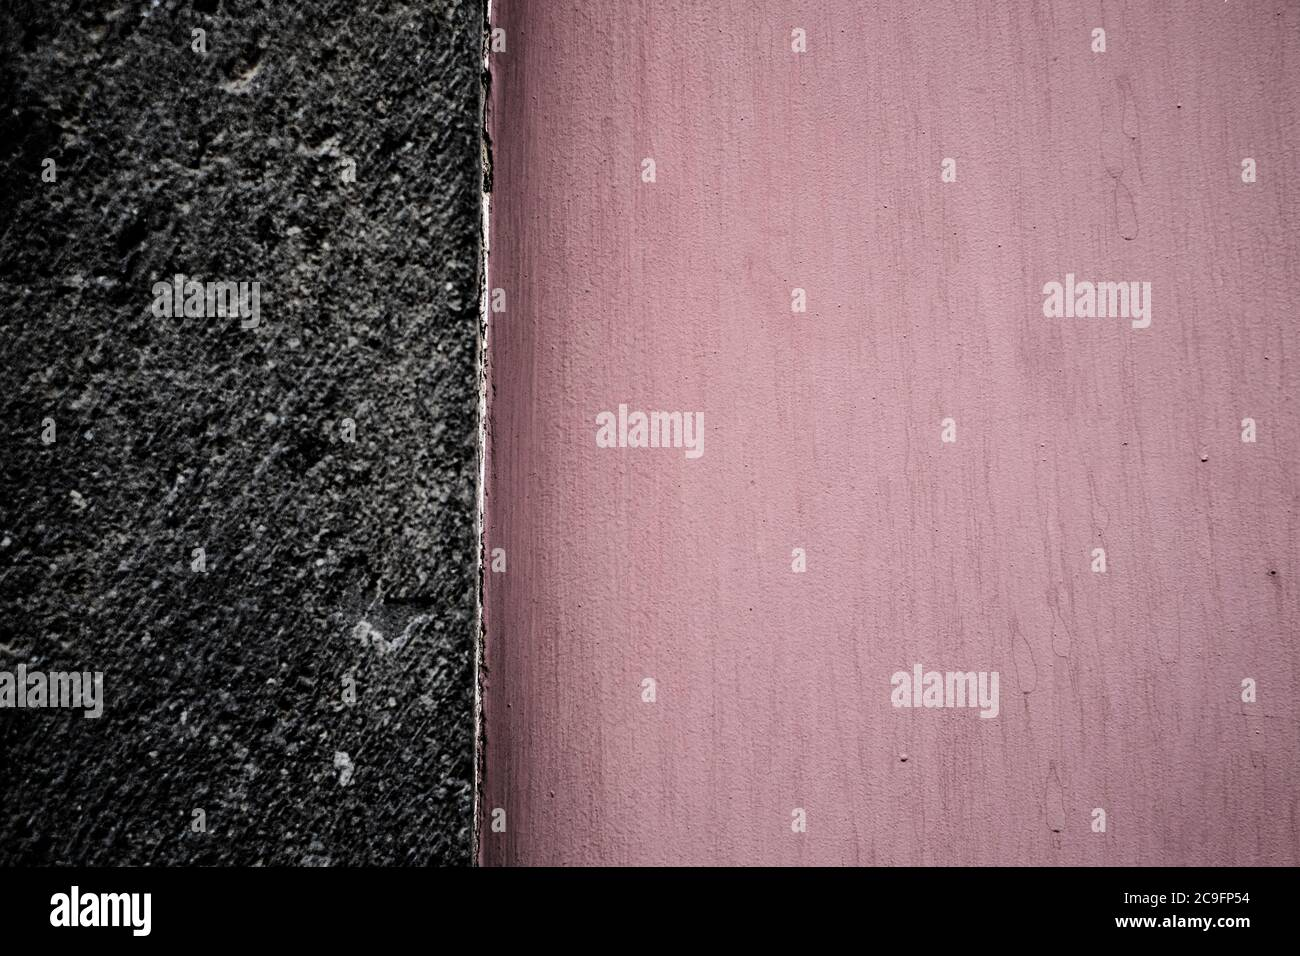 subdued colors high resolution stock photography and images alamy alamy